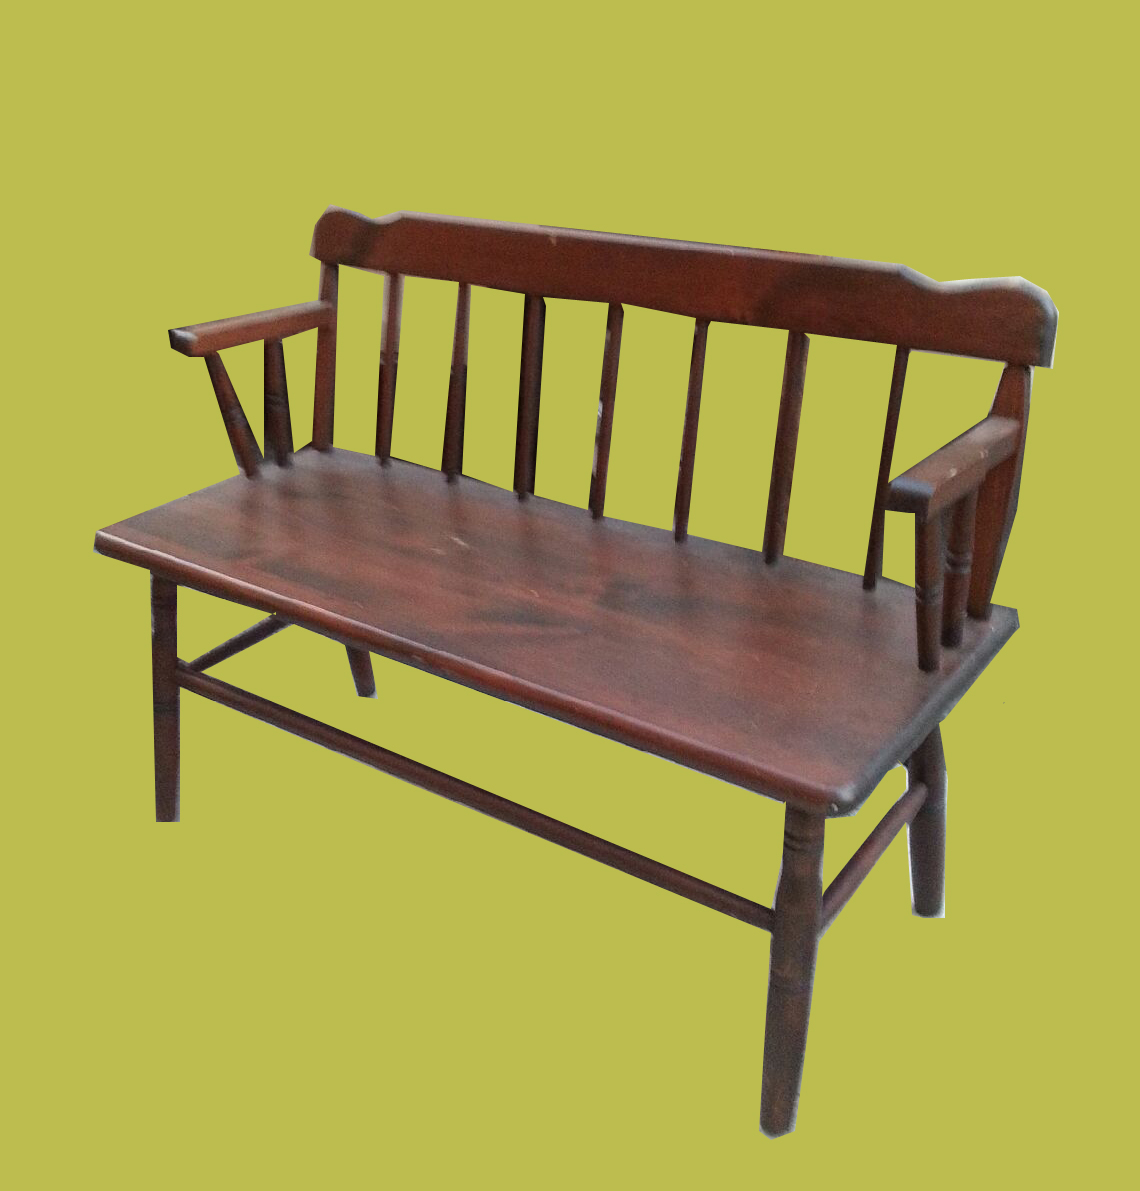 Uhuru Furniture Collectibles Shaker Style Bench Sold